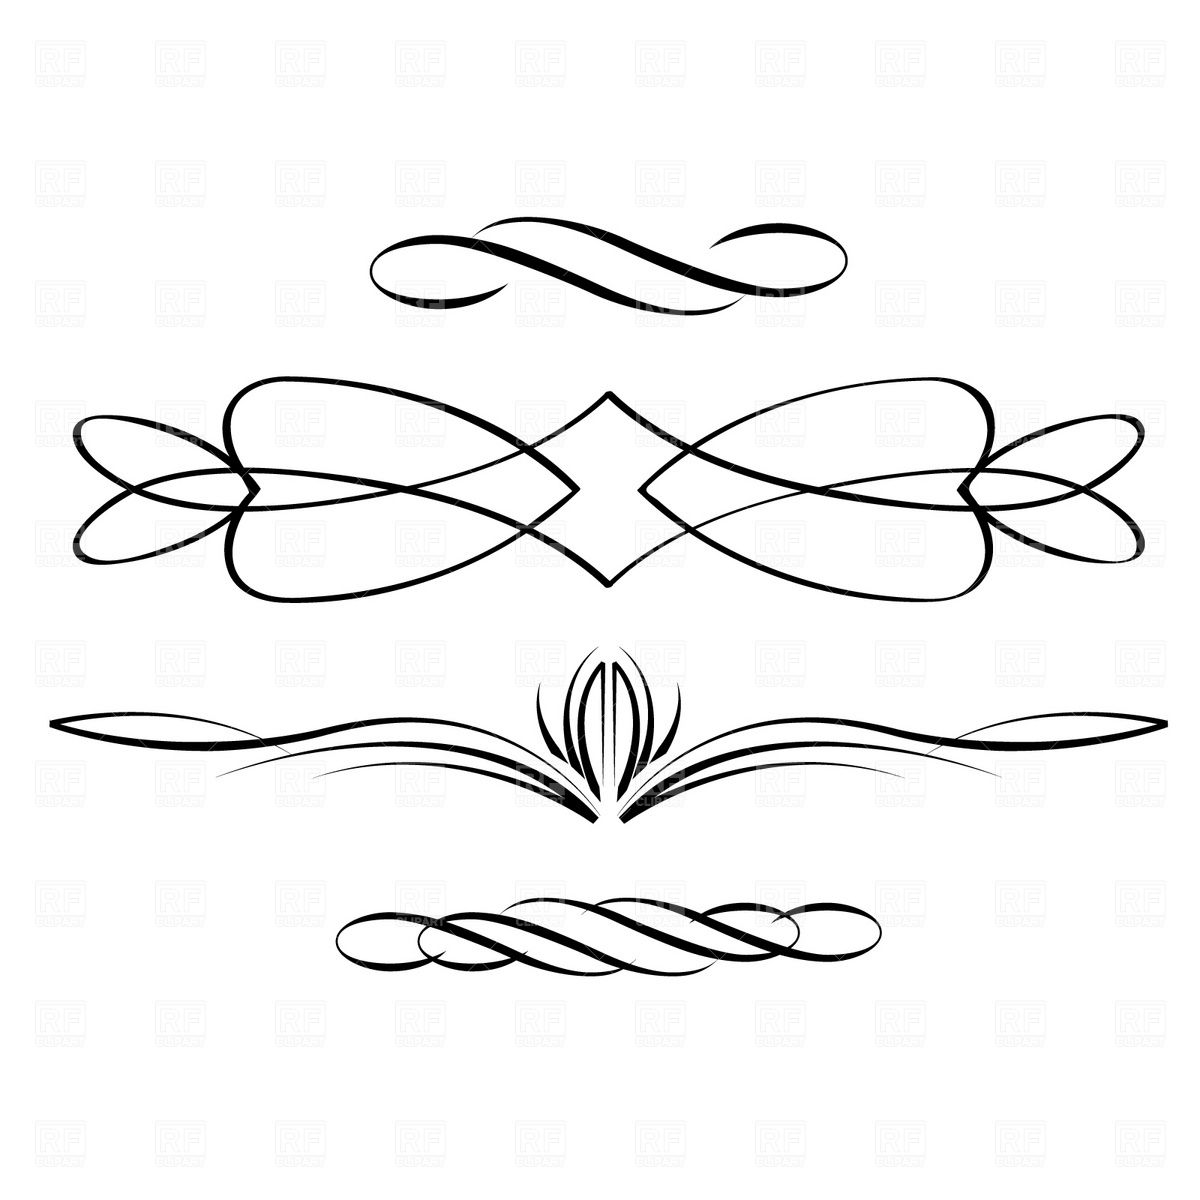 Line Design Art : Free scrolling designs scroll cliparts that